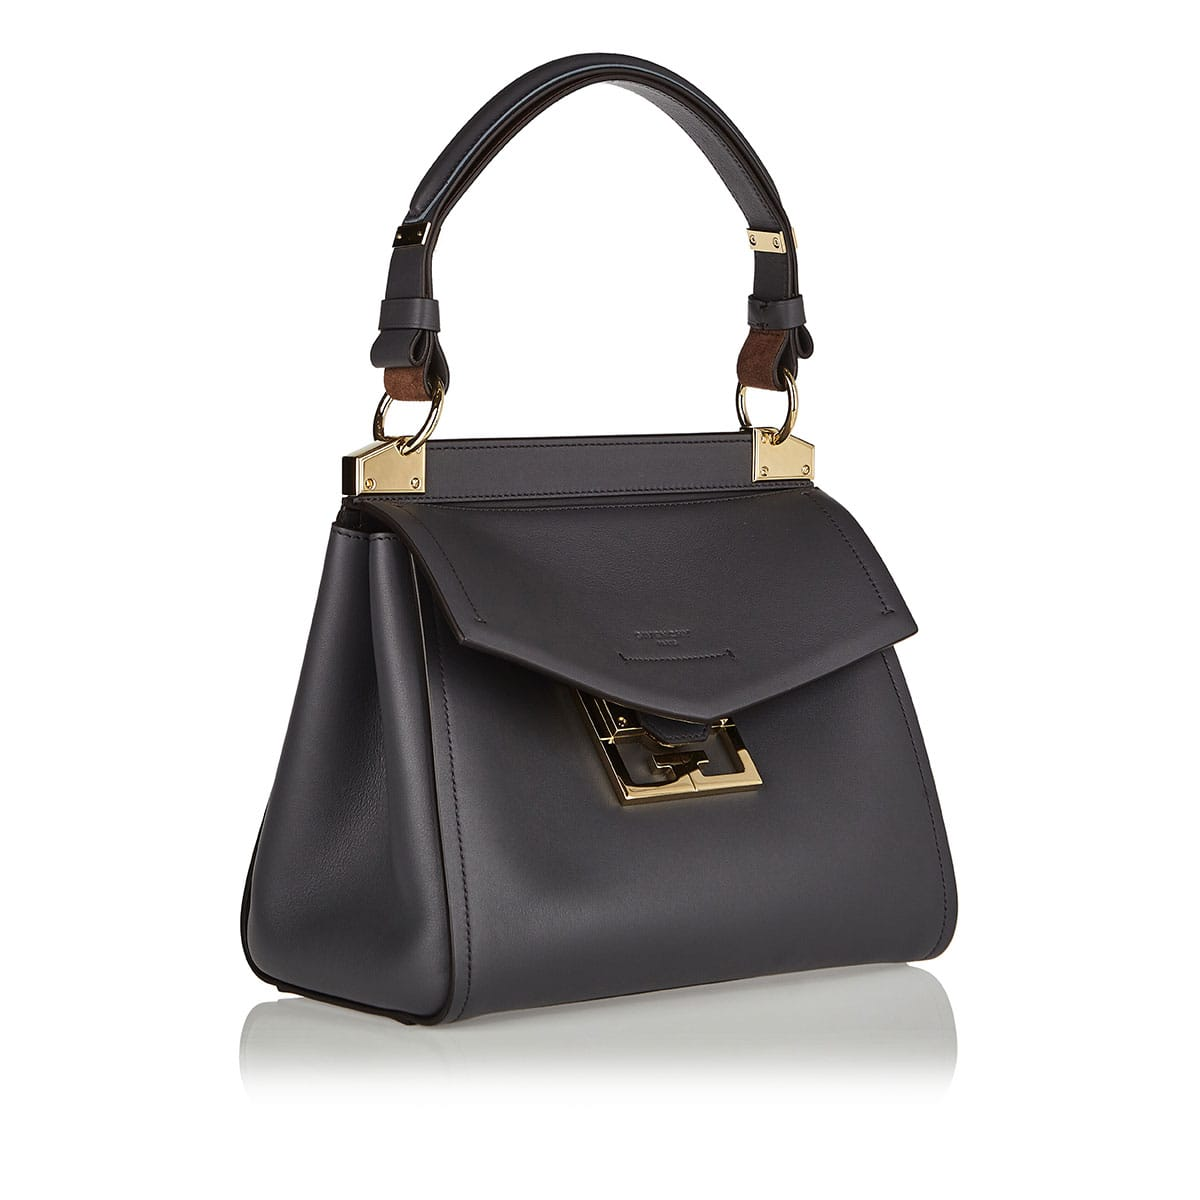 Mystic small leather shoulder bag